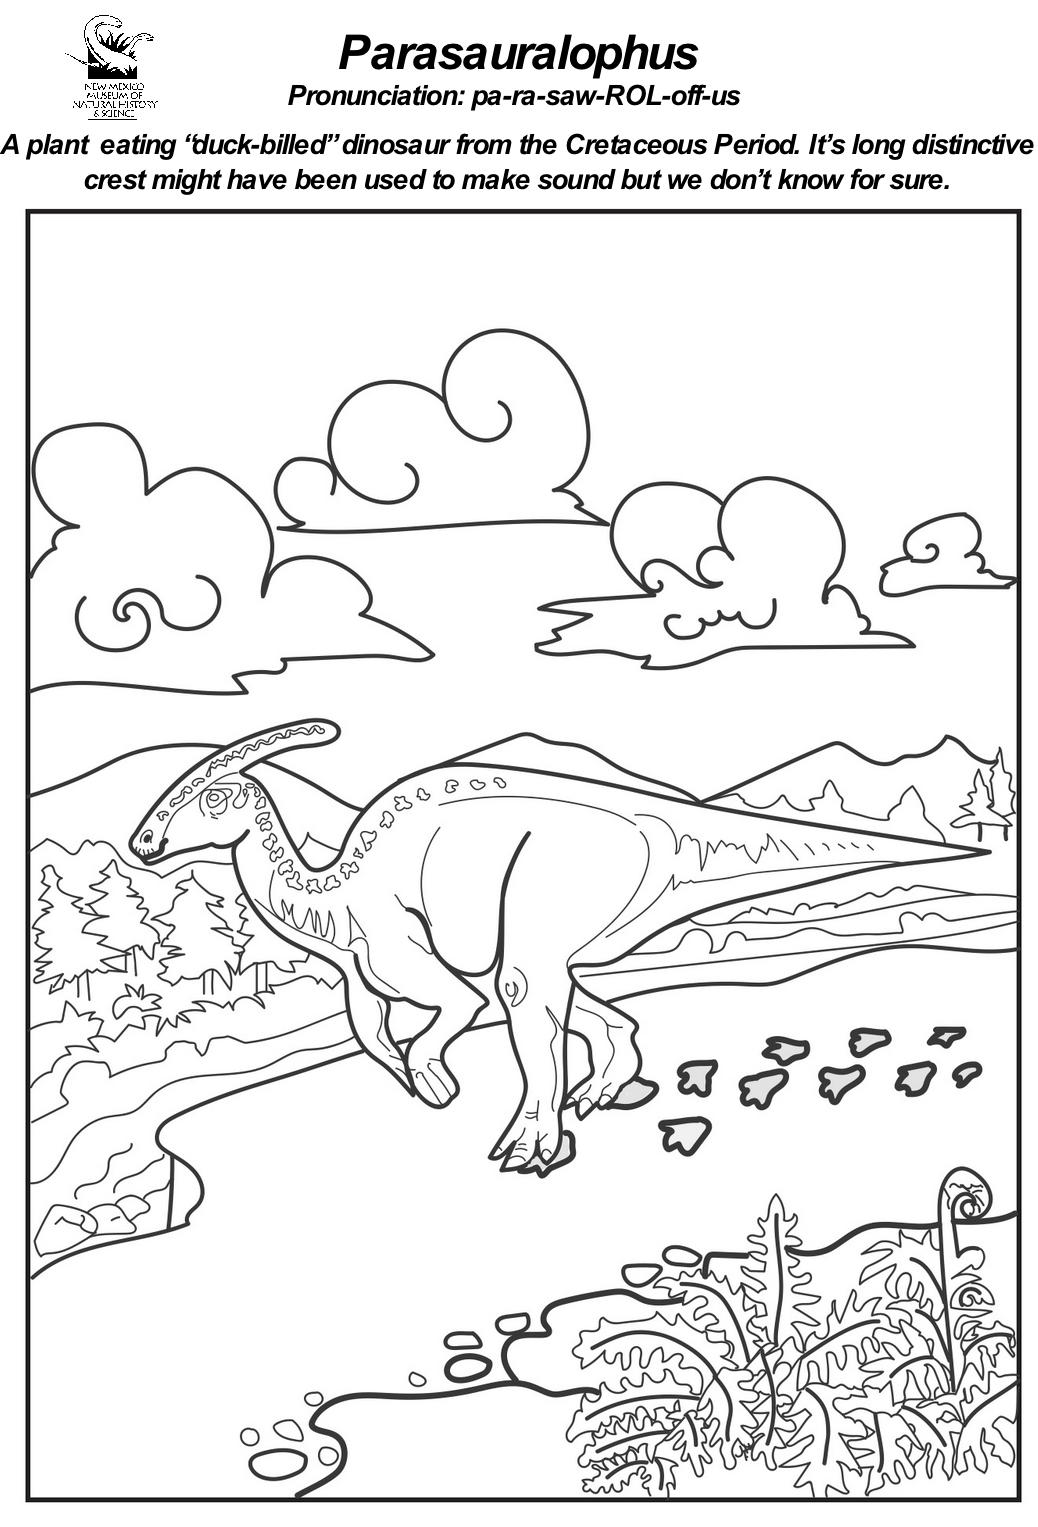 Parasaurolophus  Coloring Sheet